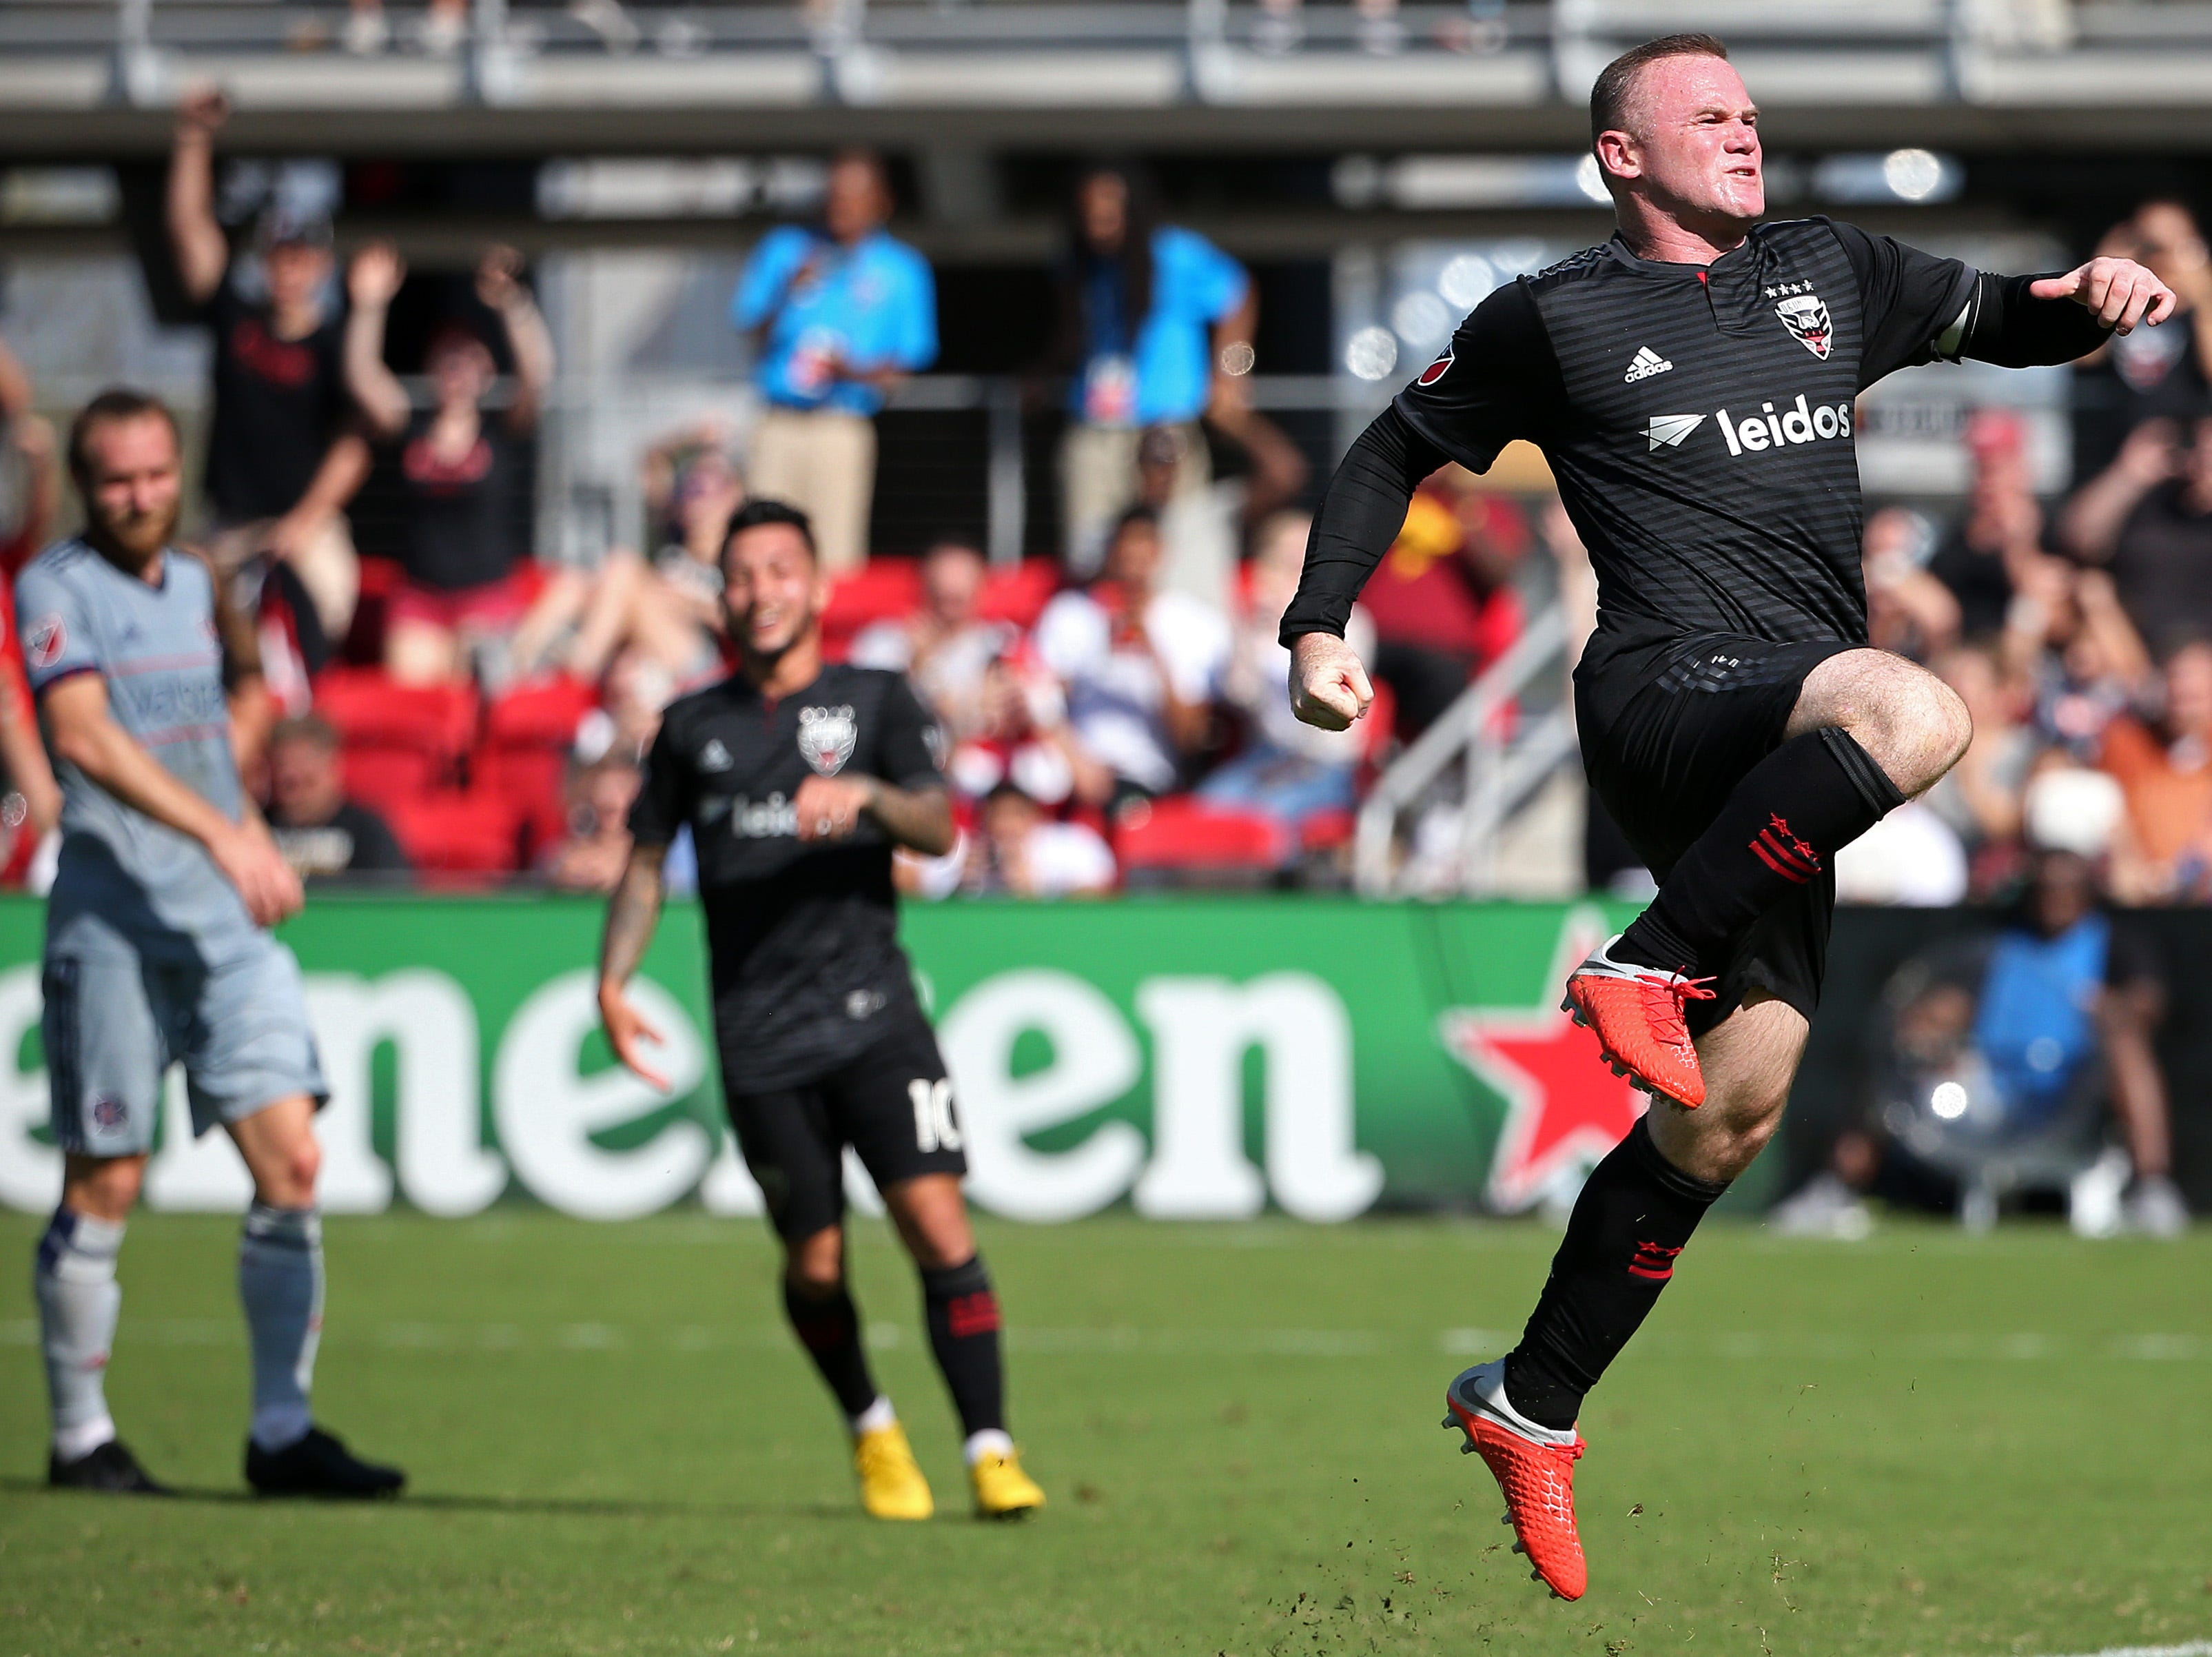 Oct. 7: D.C. United forward Wayne Rooney (9) celebrates after scoring the go-ahead goal on a penalty kick against the Chicago Fire in the second half at Audi Field.